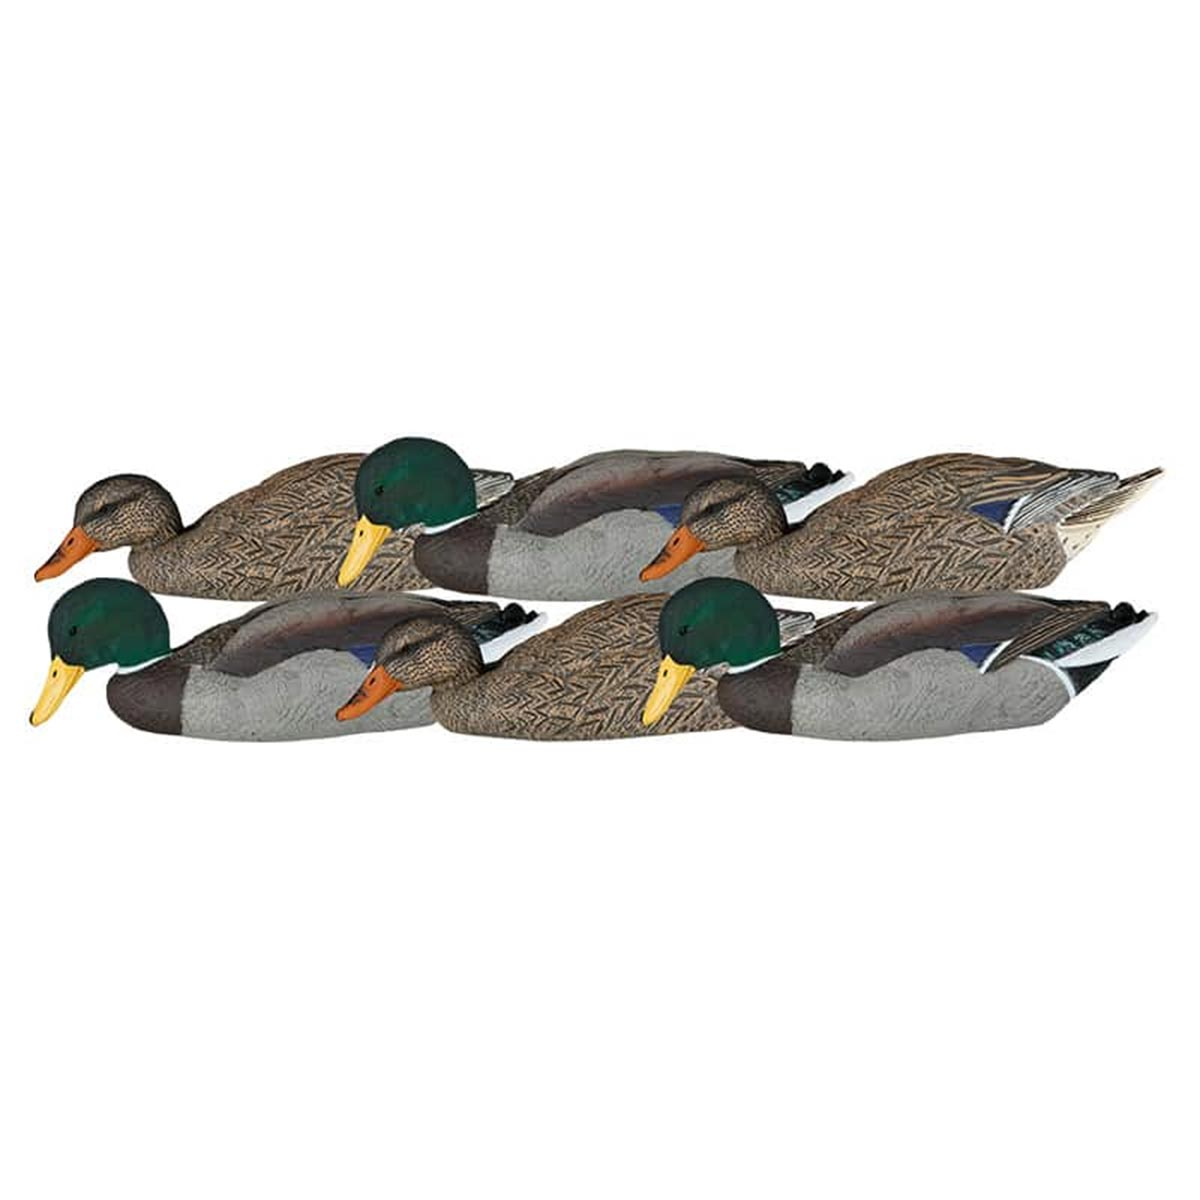 Dakota Decoy X-Treme Mallard Skimmer 6 Pack with Flocked Heads_1.jpg